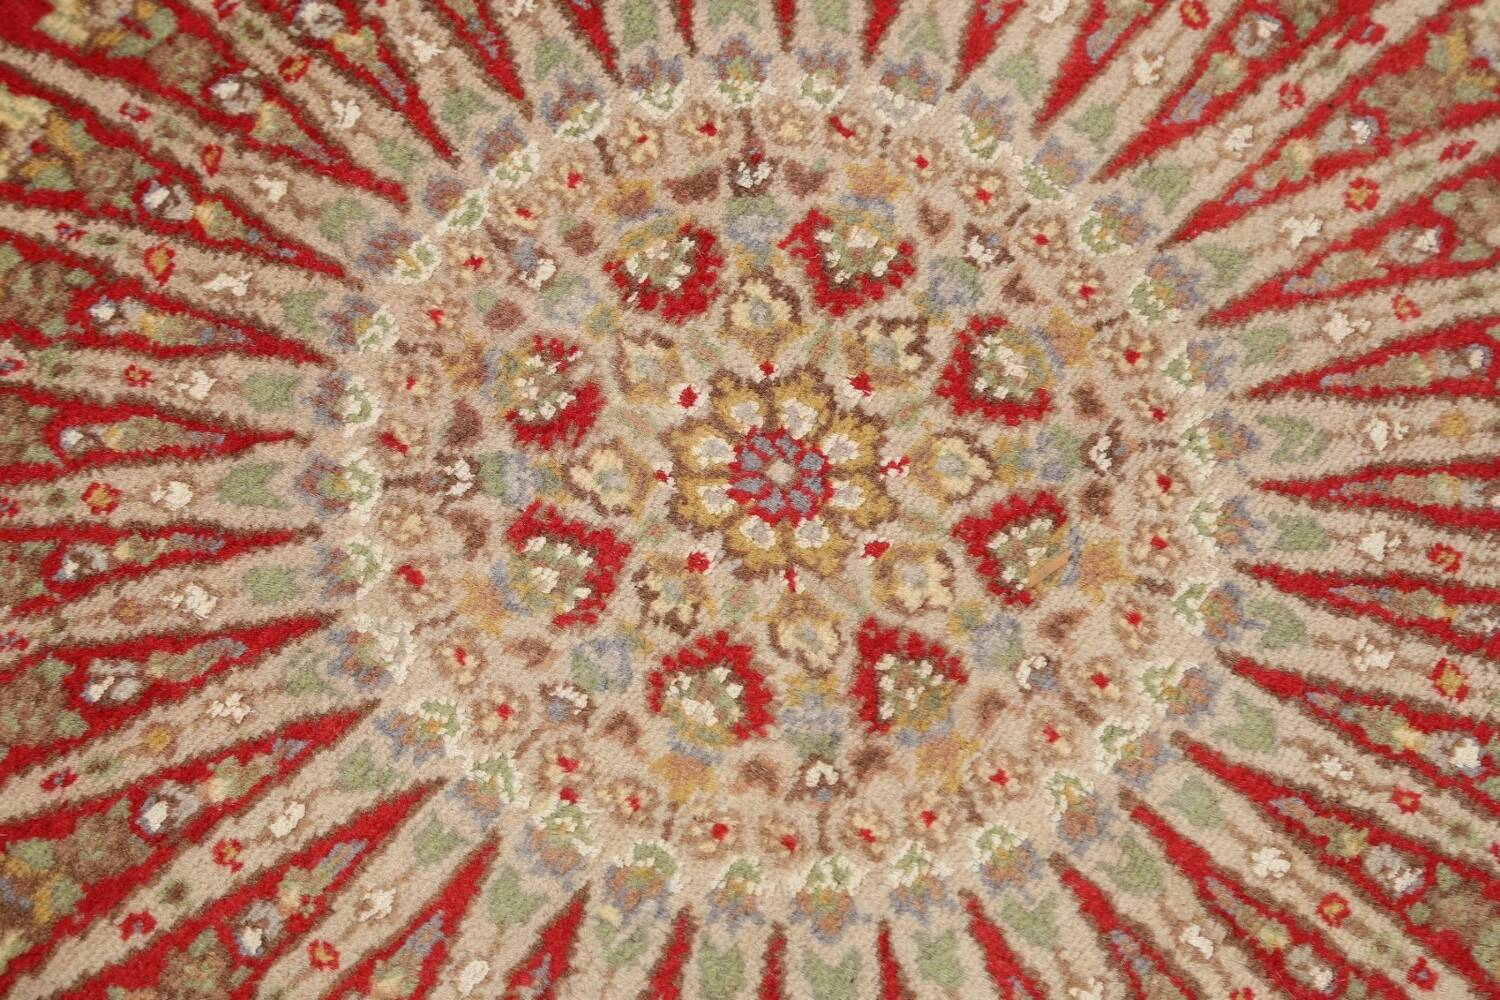 Vegetable Dye Round Royal Tabriz Oriental Area Rug 5x5 image 9